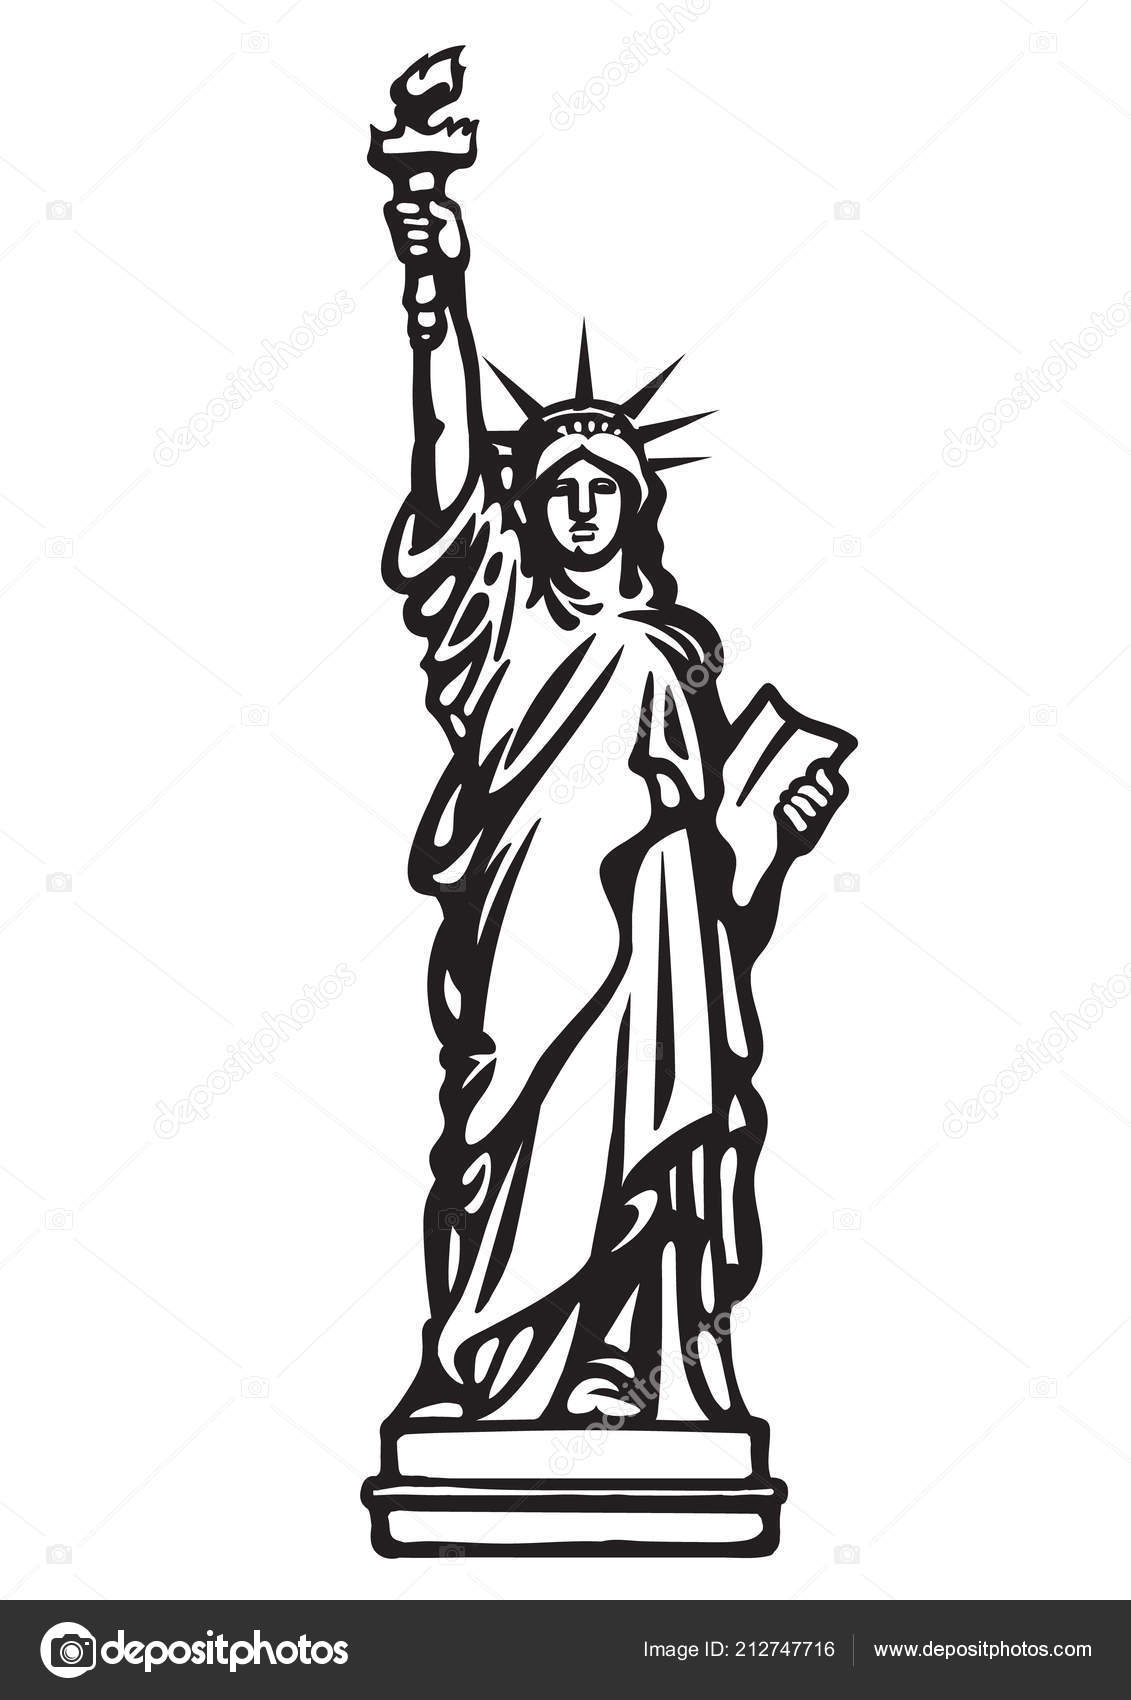 The Statue Of Liberty New York City Black And White Skethc